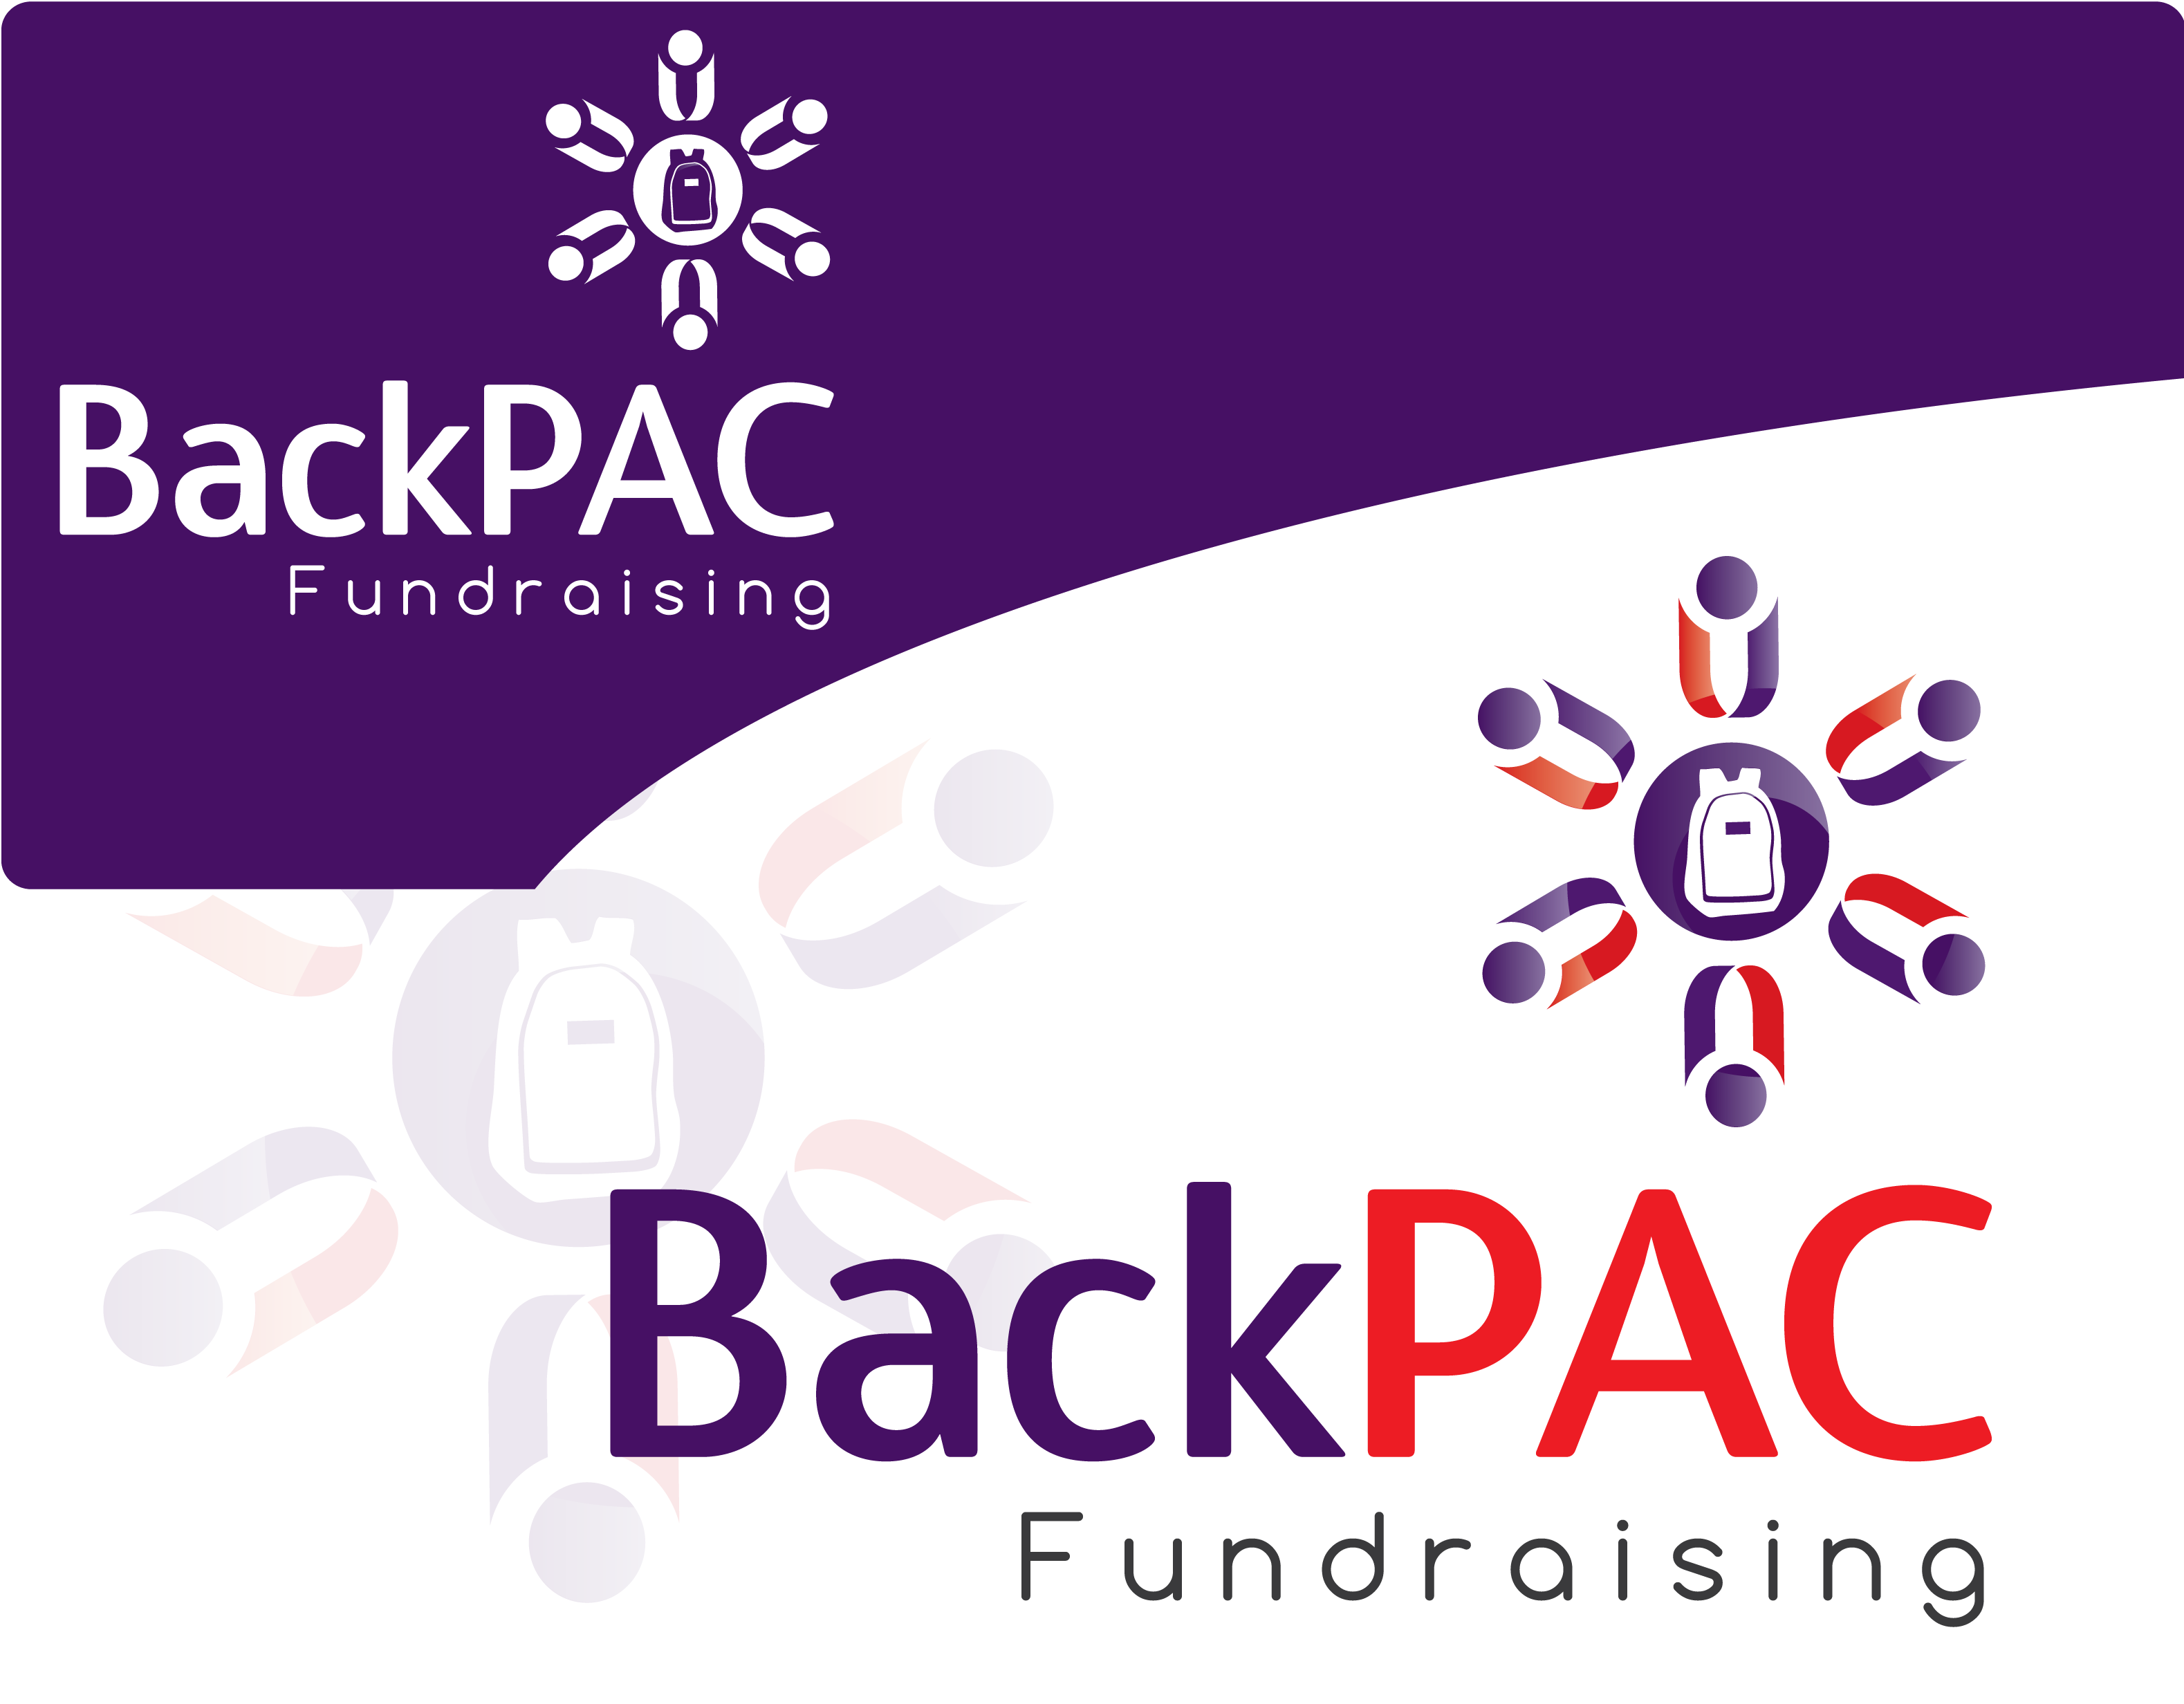 Logo Design by 354studio - Entry No. 81 in the Logo Design Contest Imaginative Logo Design for BackPAC Fundraising.